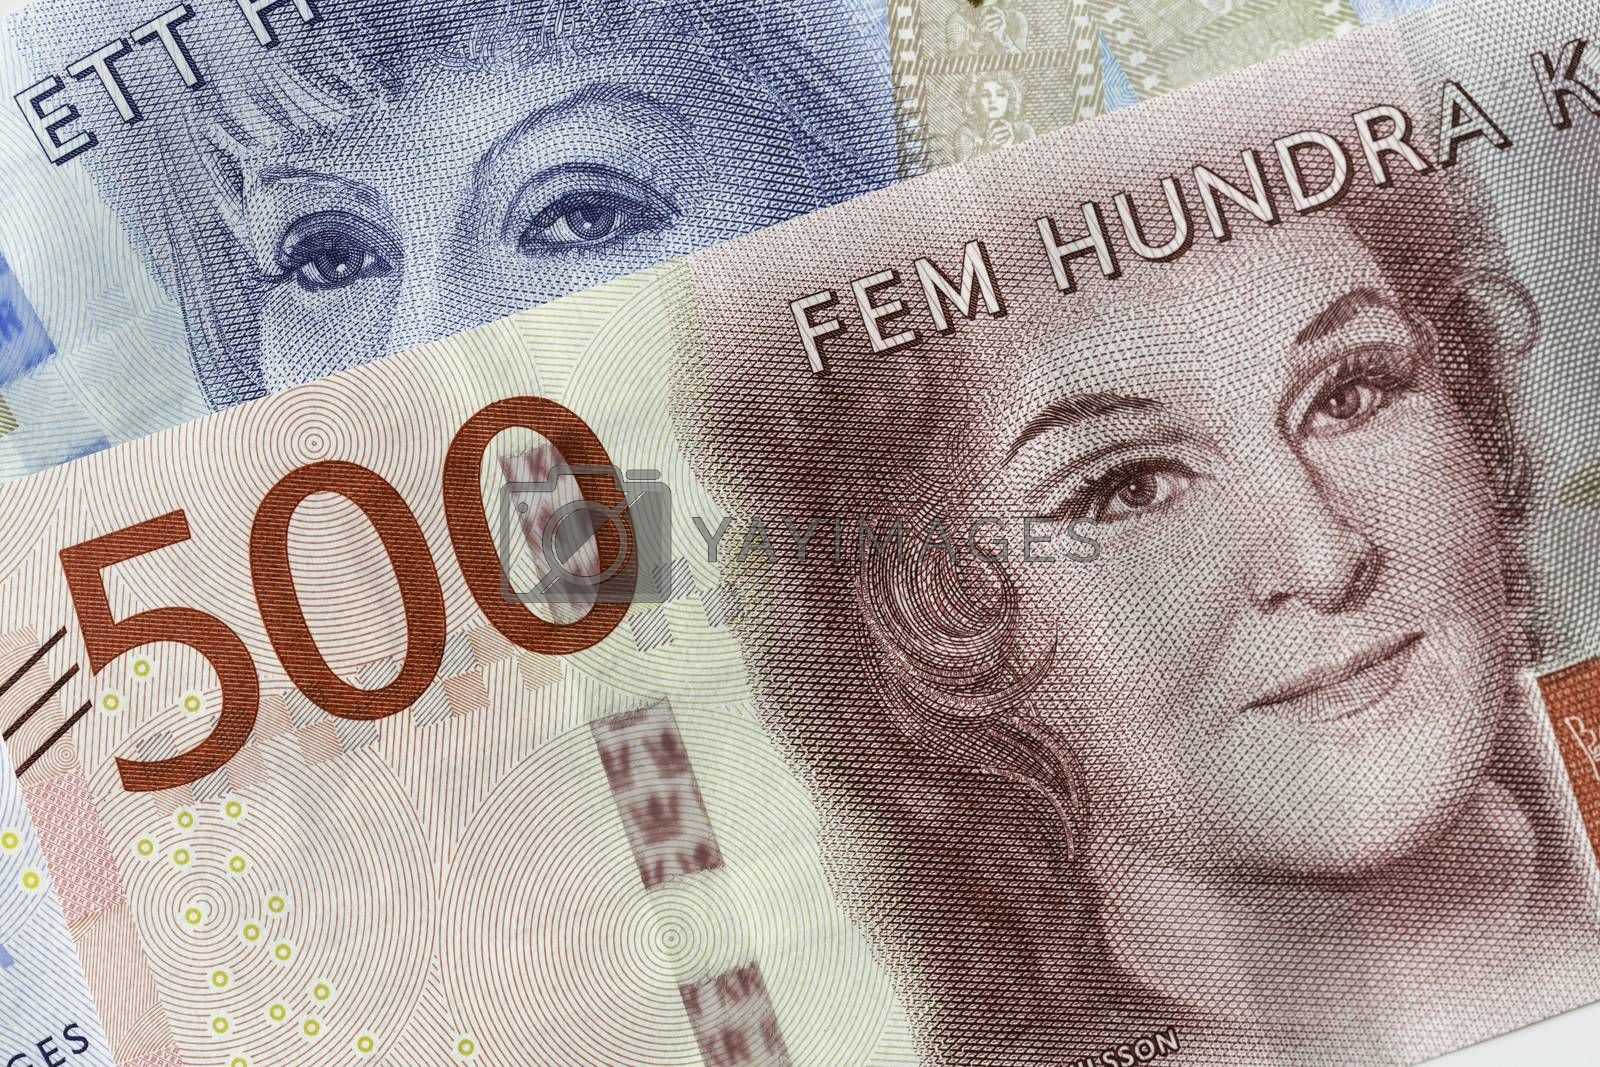 Swedish Currency (100 and 200 notes) Close Up.